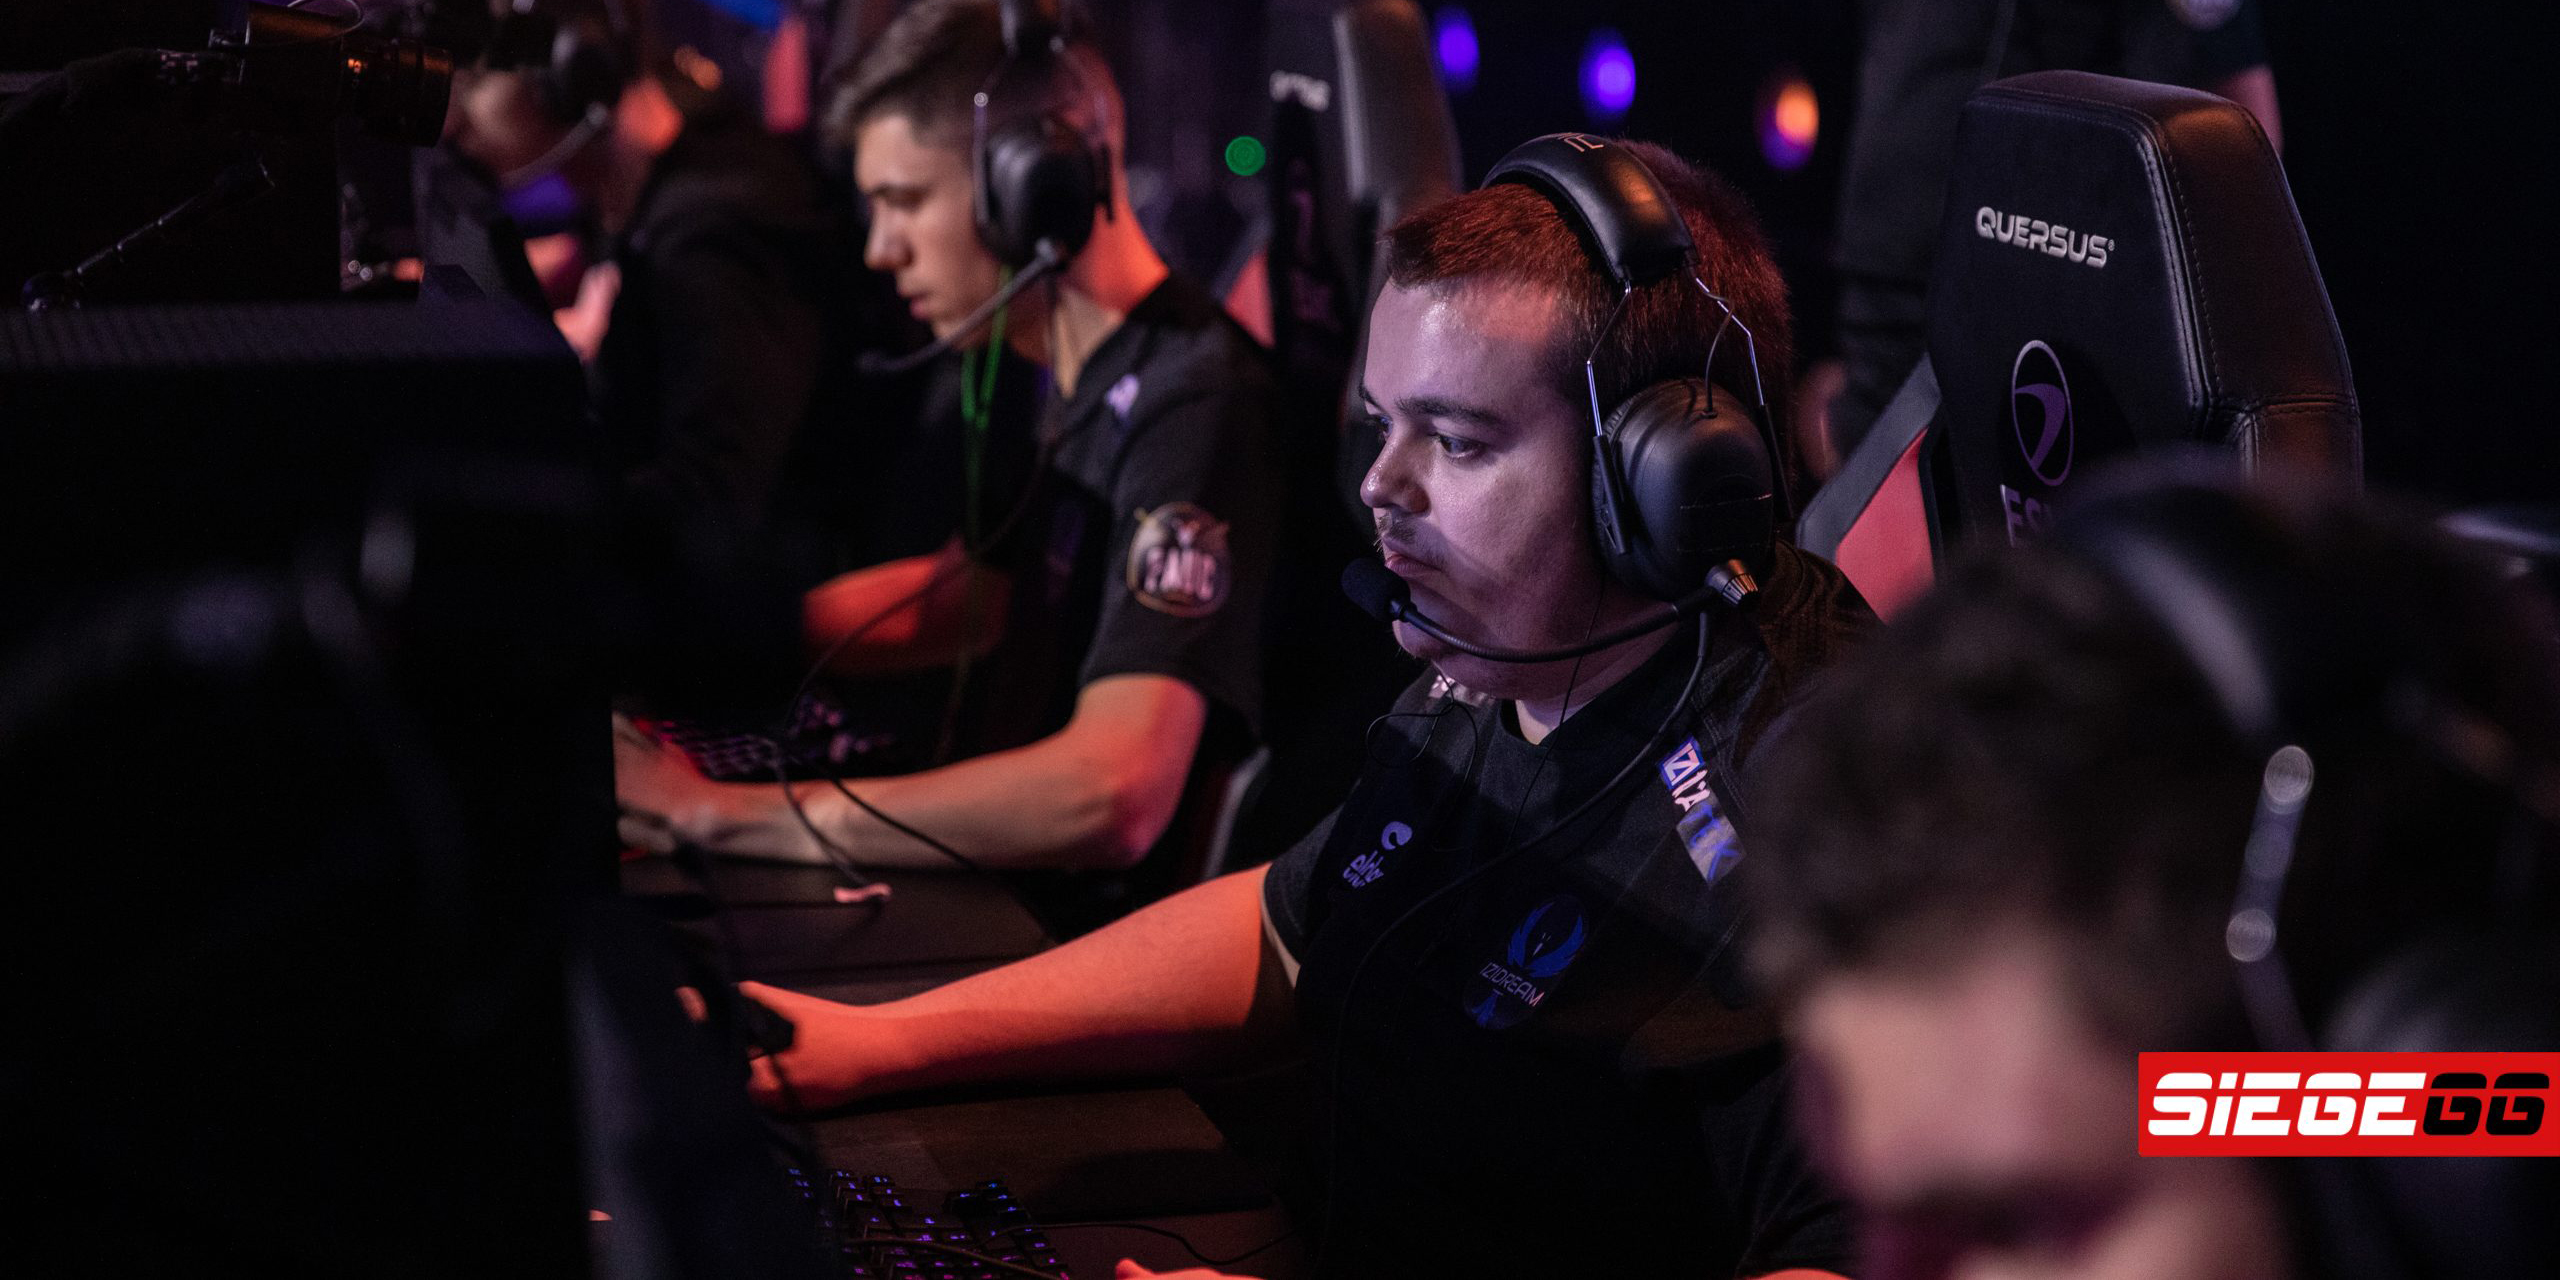 Heroic auto-relegated from EUL, Team Secret to play in relegations